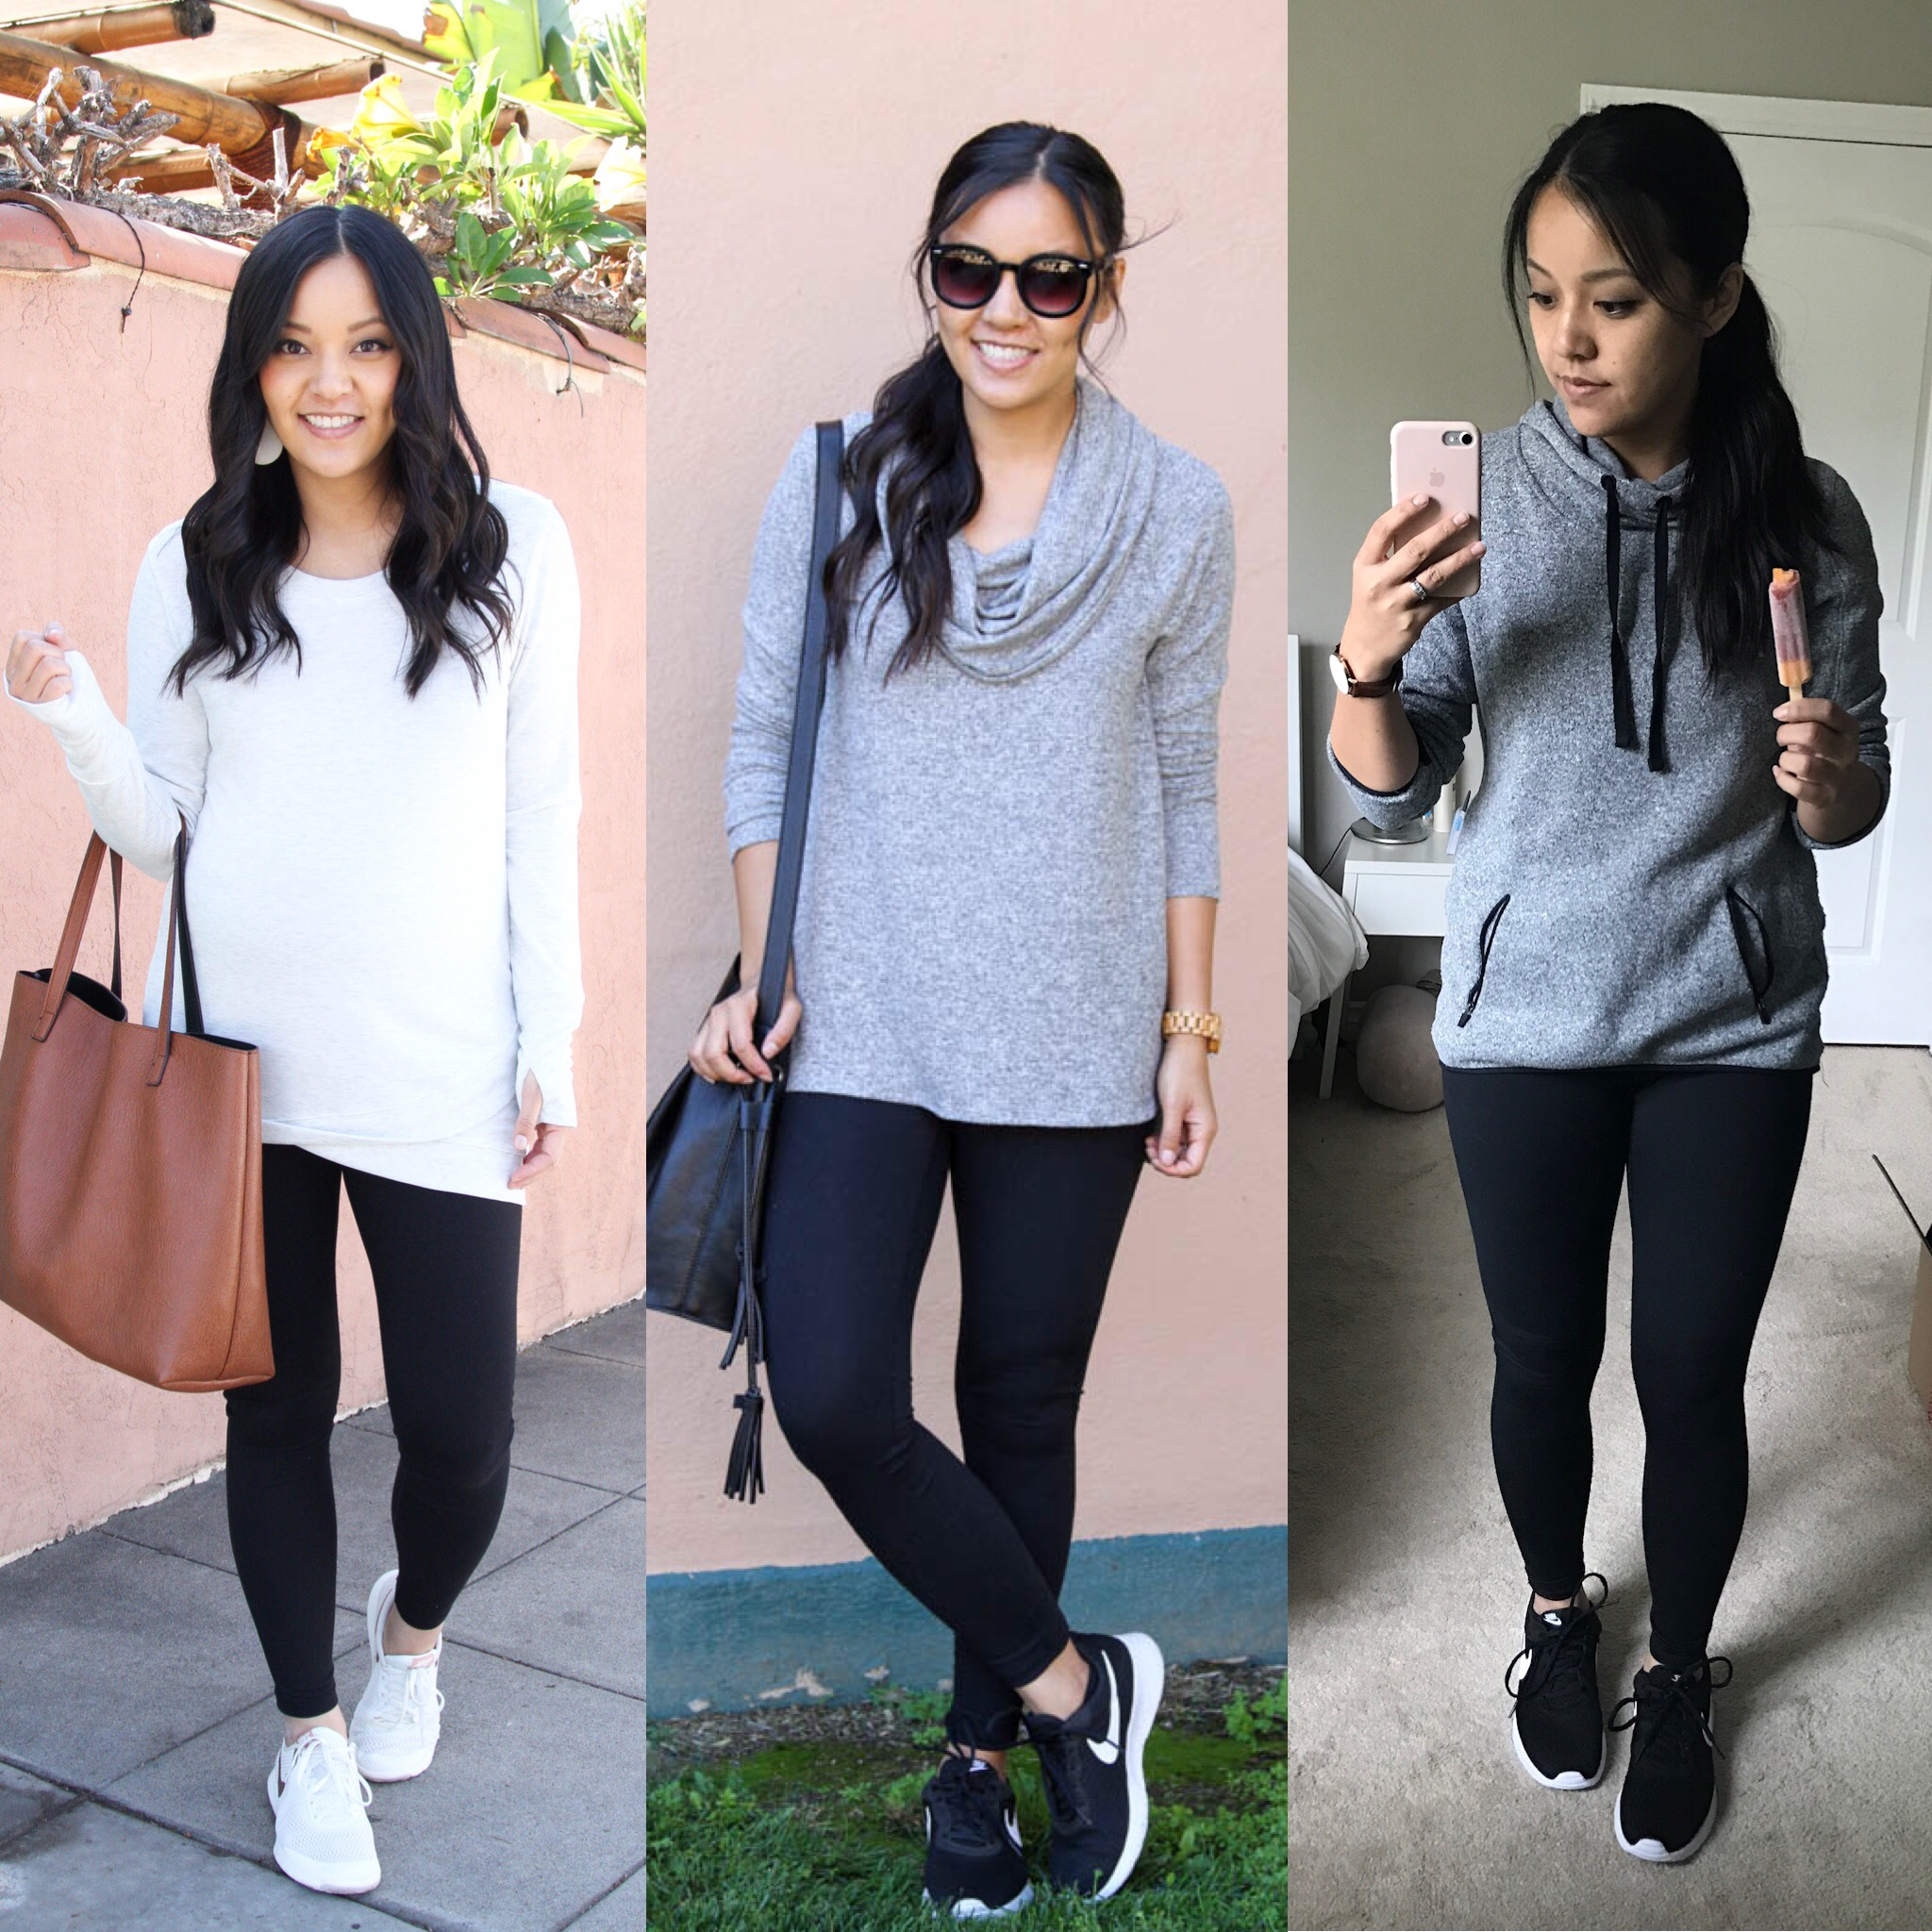 Spring Style Profile: Basic Building Blocks for Athleisure Style